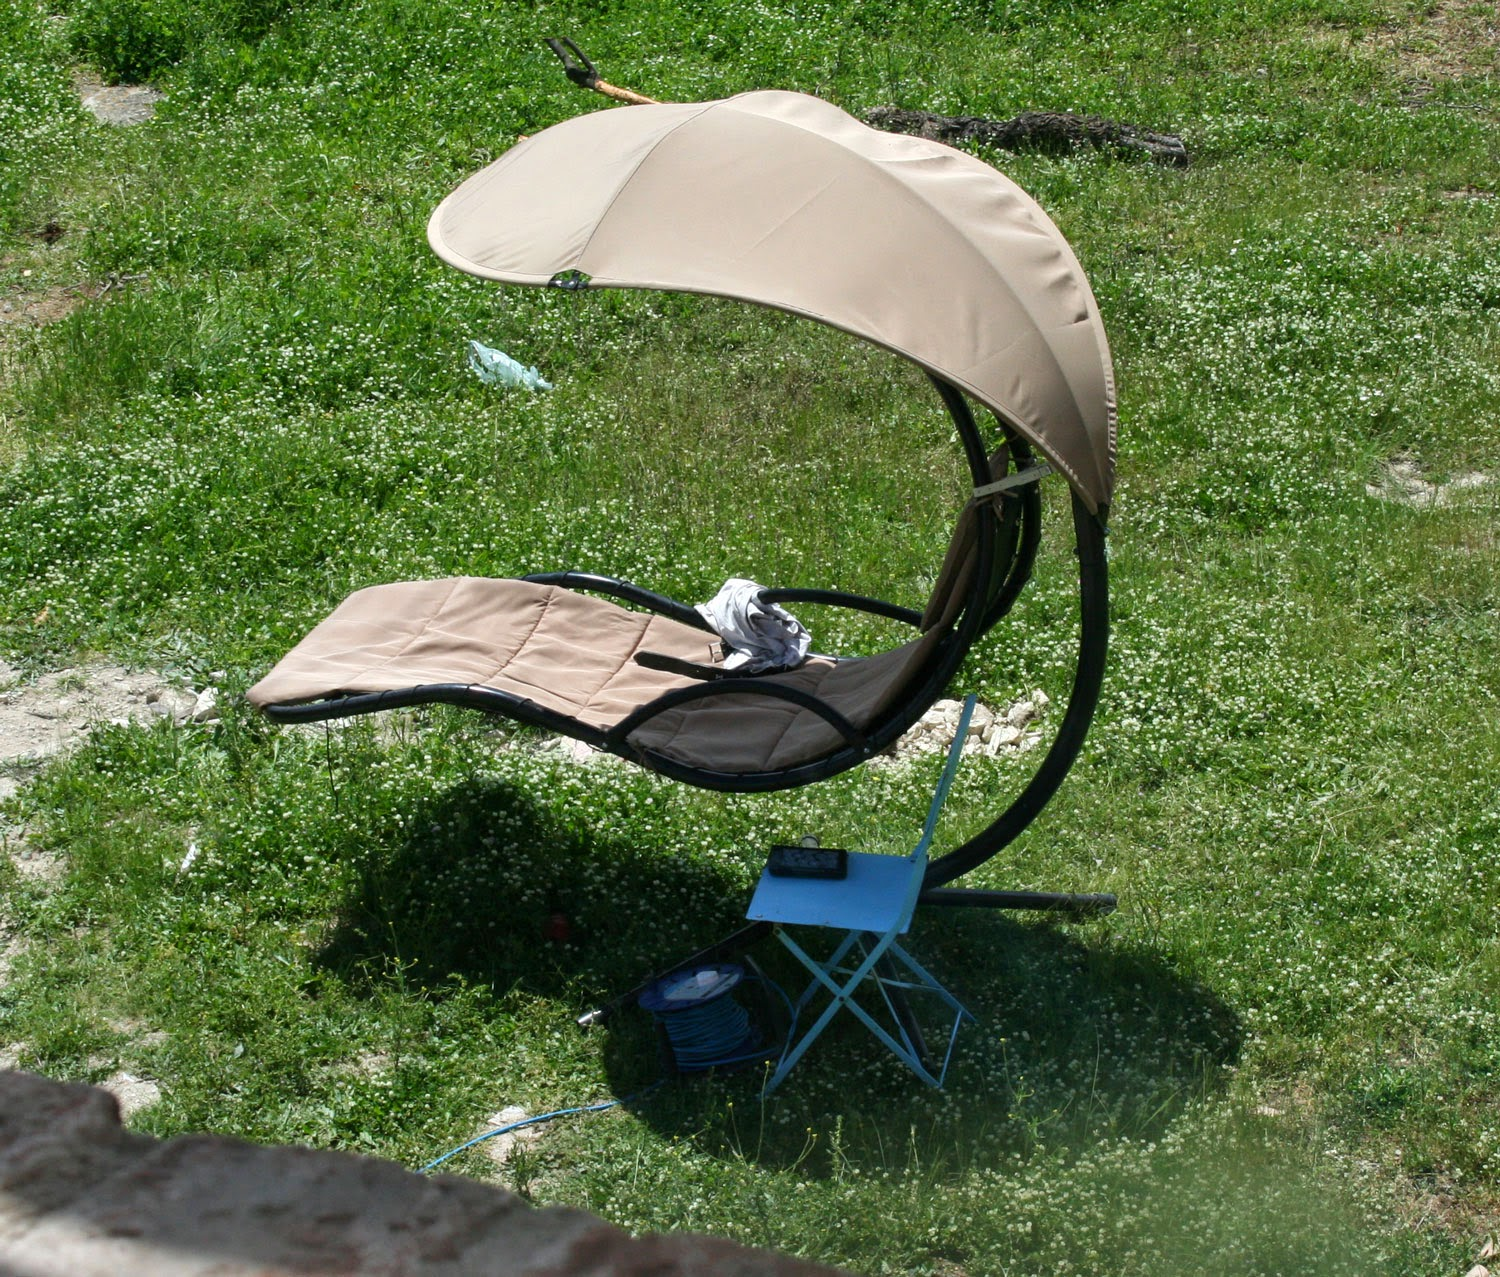 New location for the sun chair